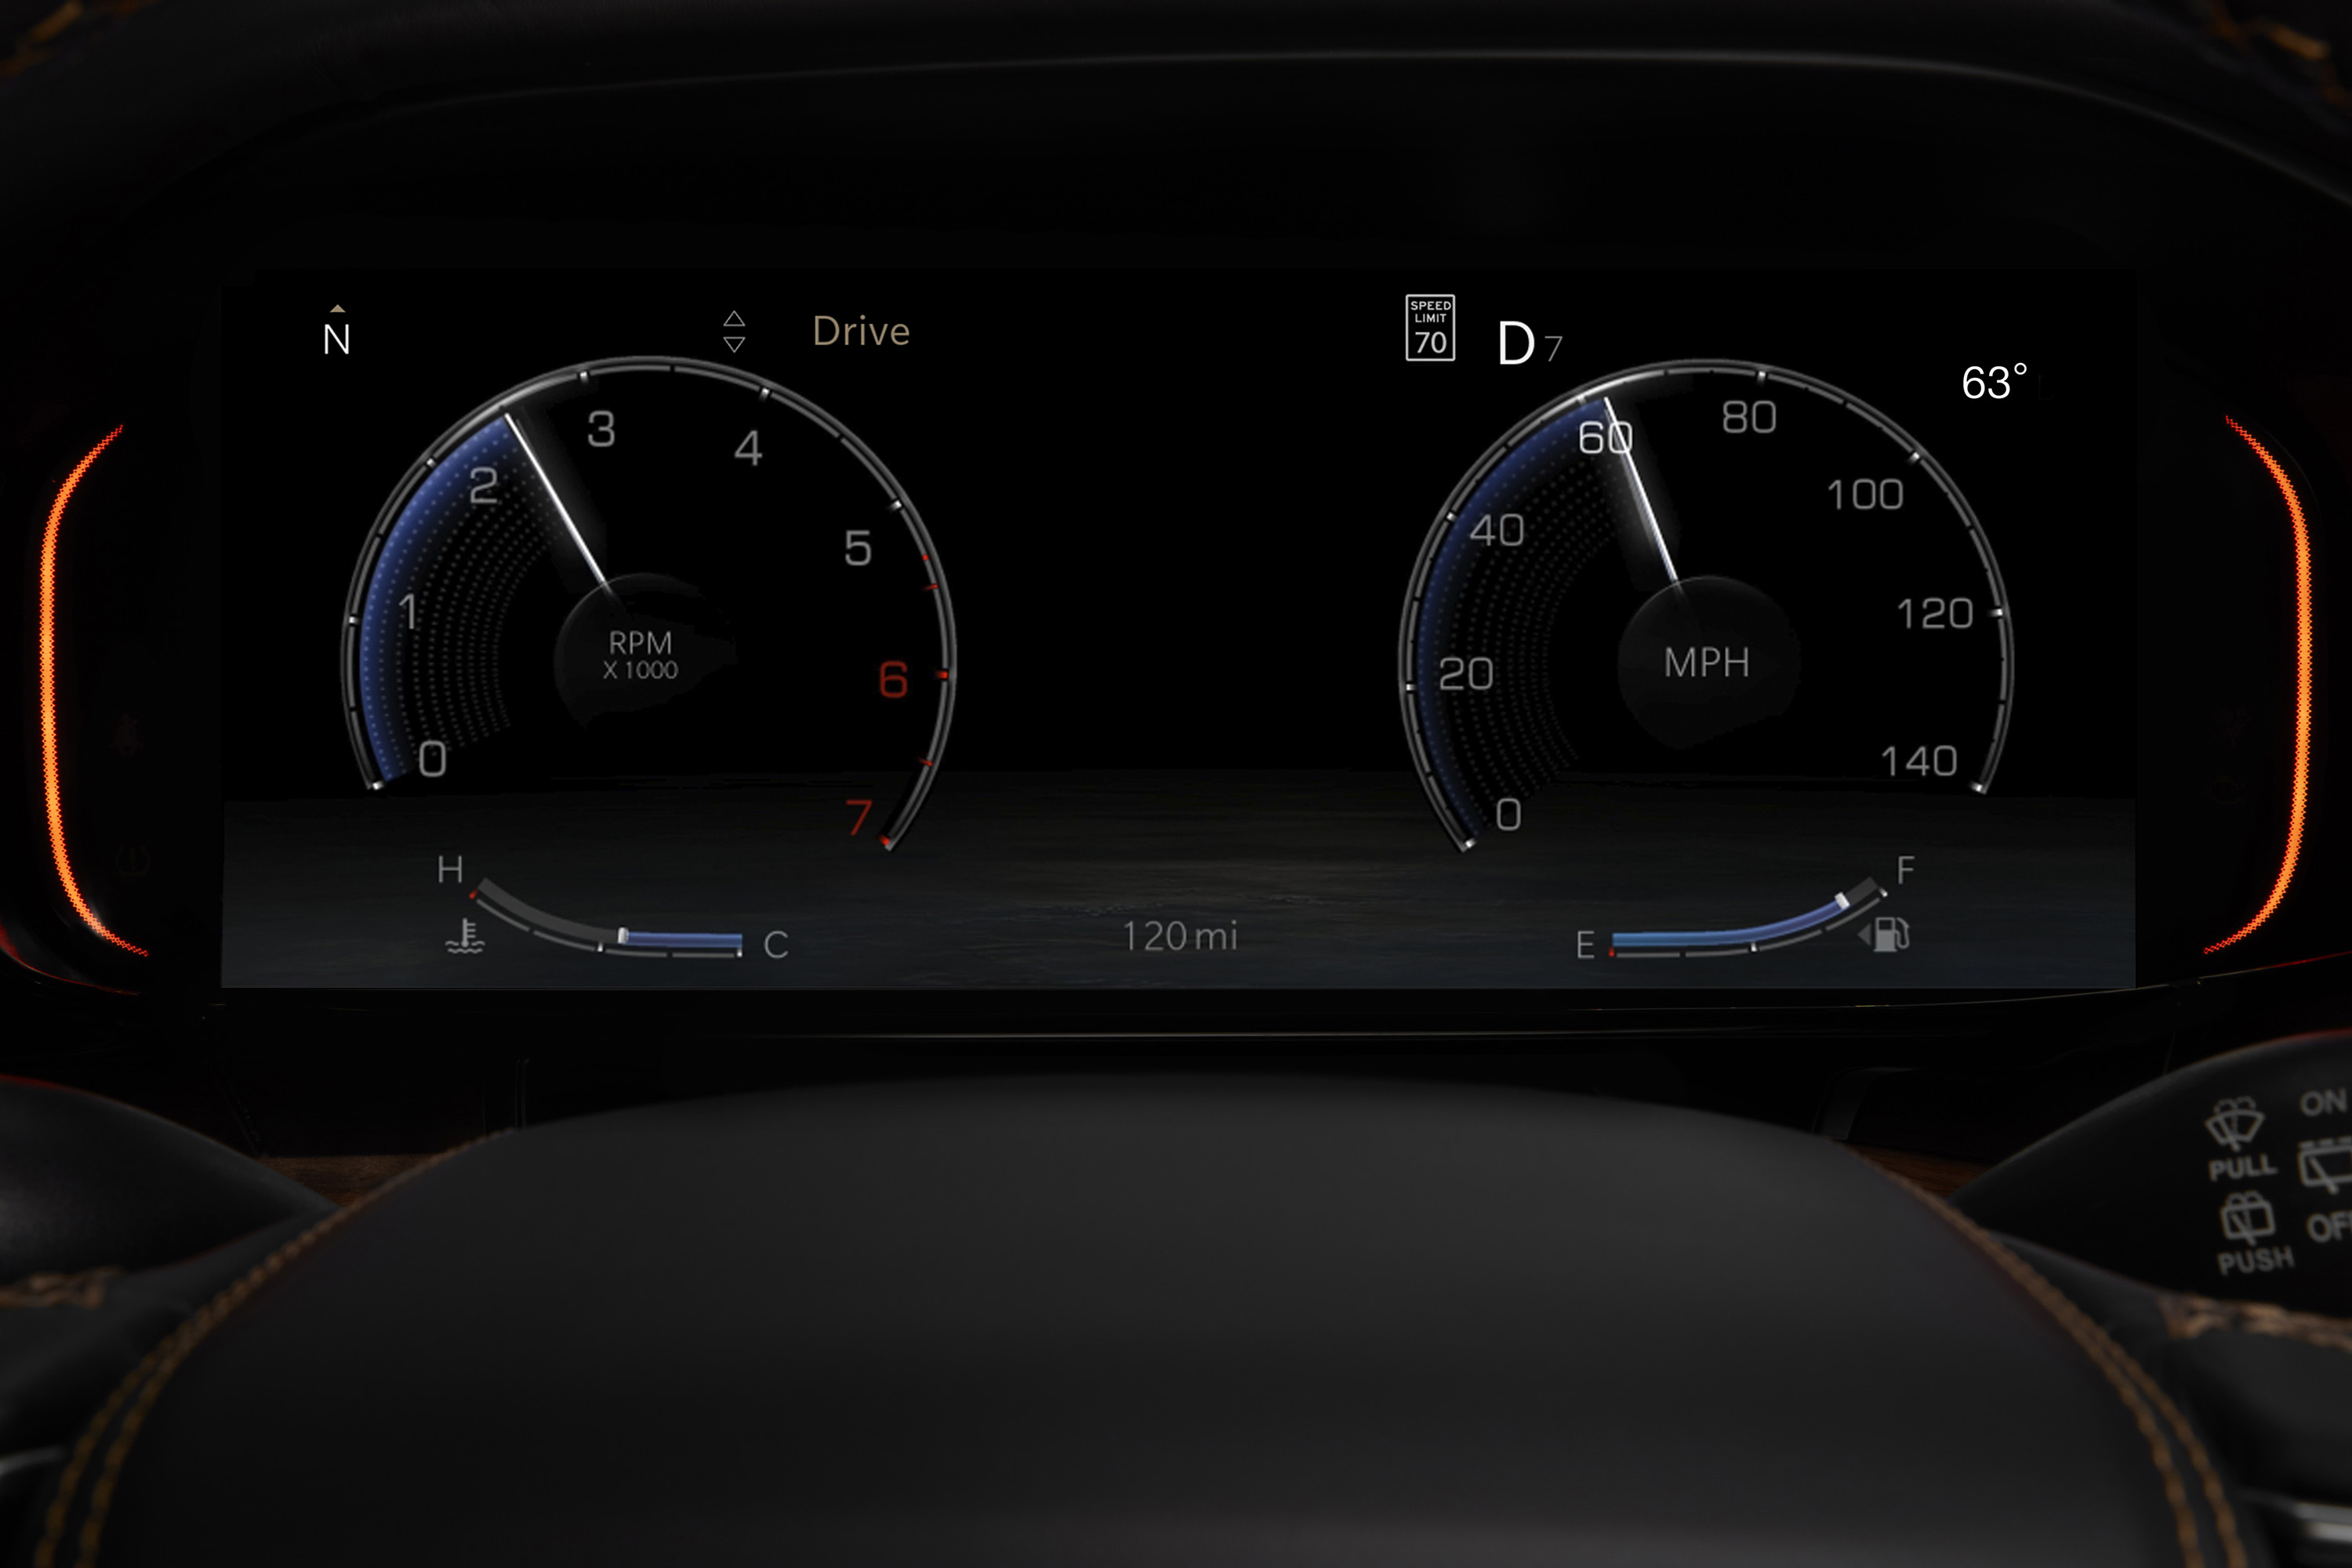 All-new 2022 Wagoneer features a standard 10.25-inch frameless digital cluster with nearly two dozen different menus including an analog speedometer.